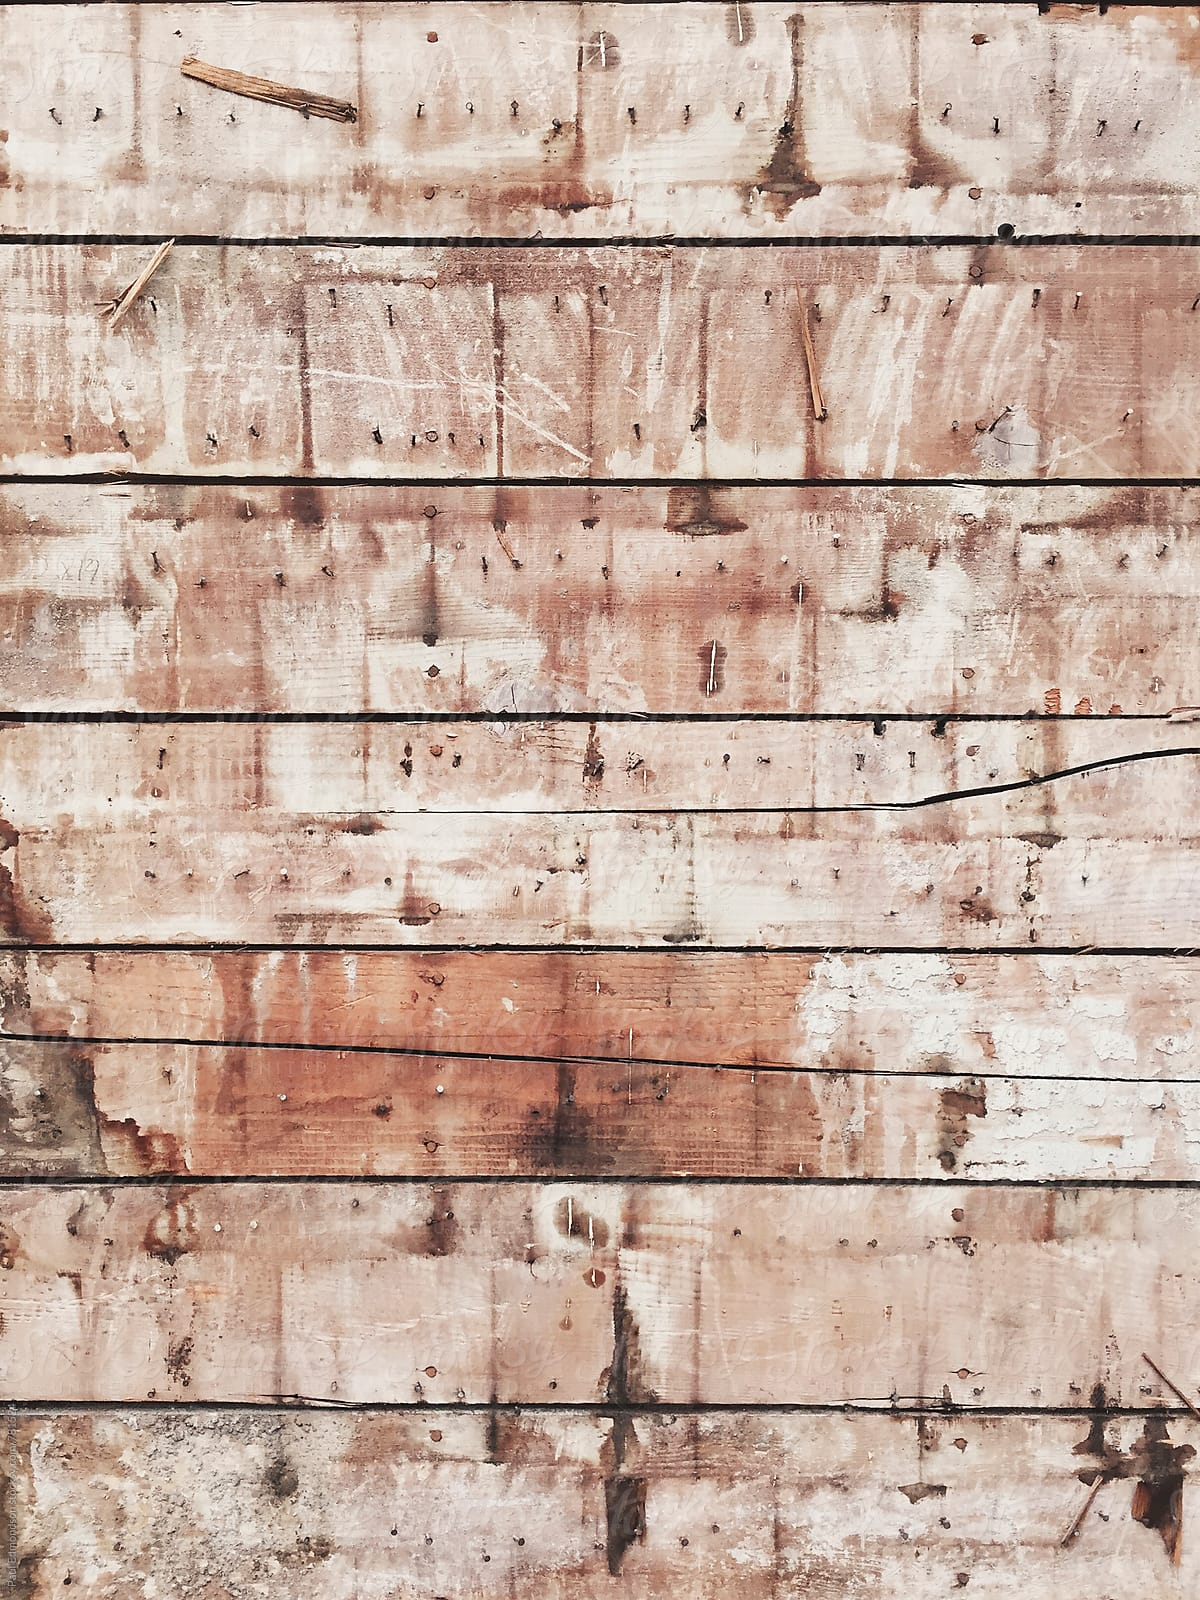 Superb Exposed Wood Siding From Old House Wall By Rialto Images Download Free Architecture Designs Embacsunscenecom